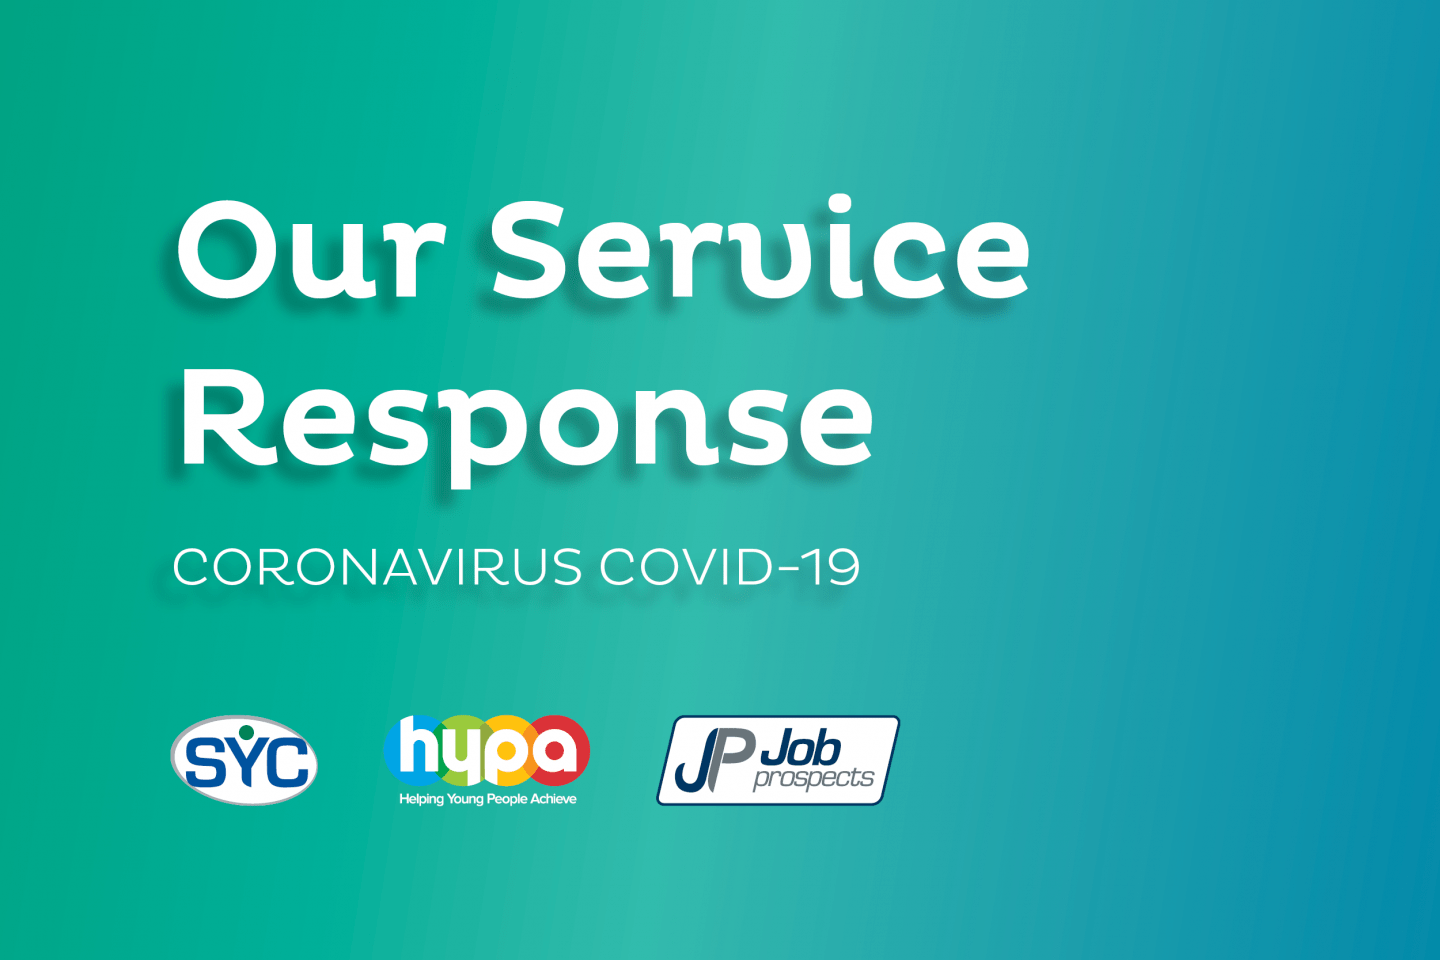 Our Service Response COVID-19